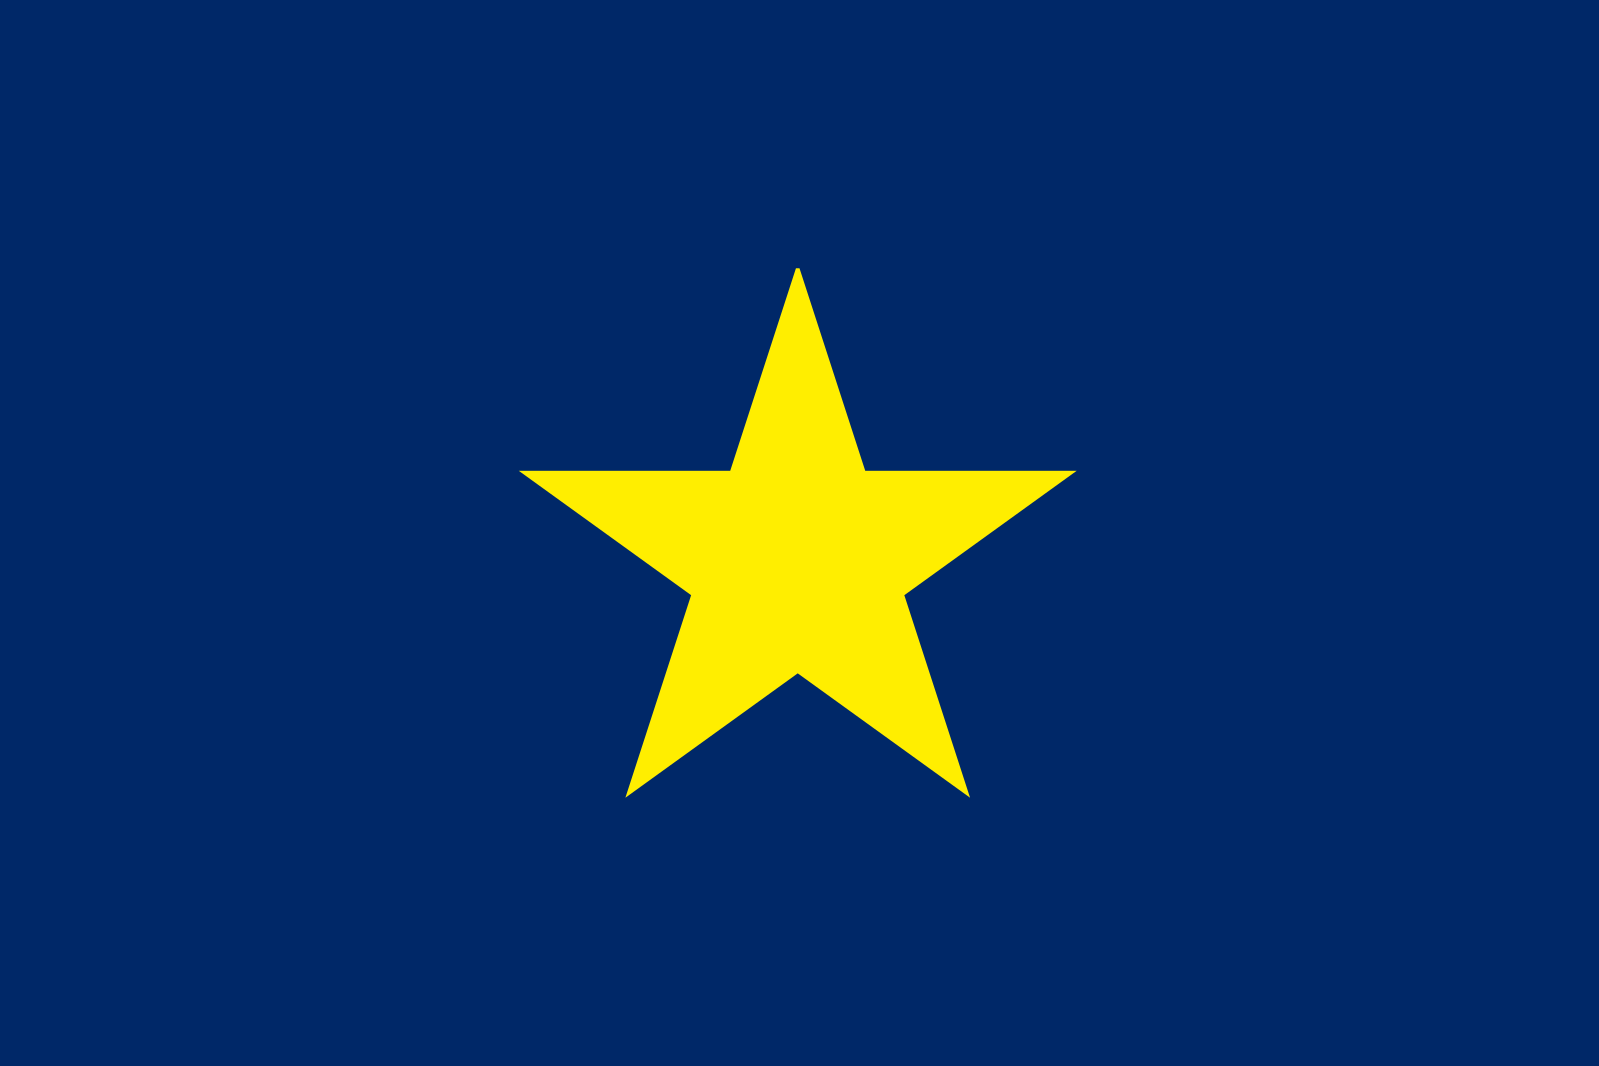 File:Flag of the Republic of Texas (1836-1839).svg | flags and ...